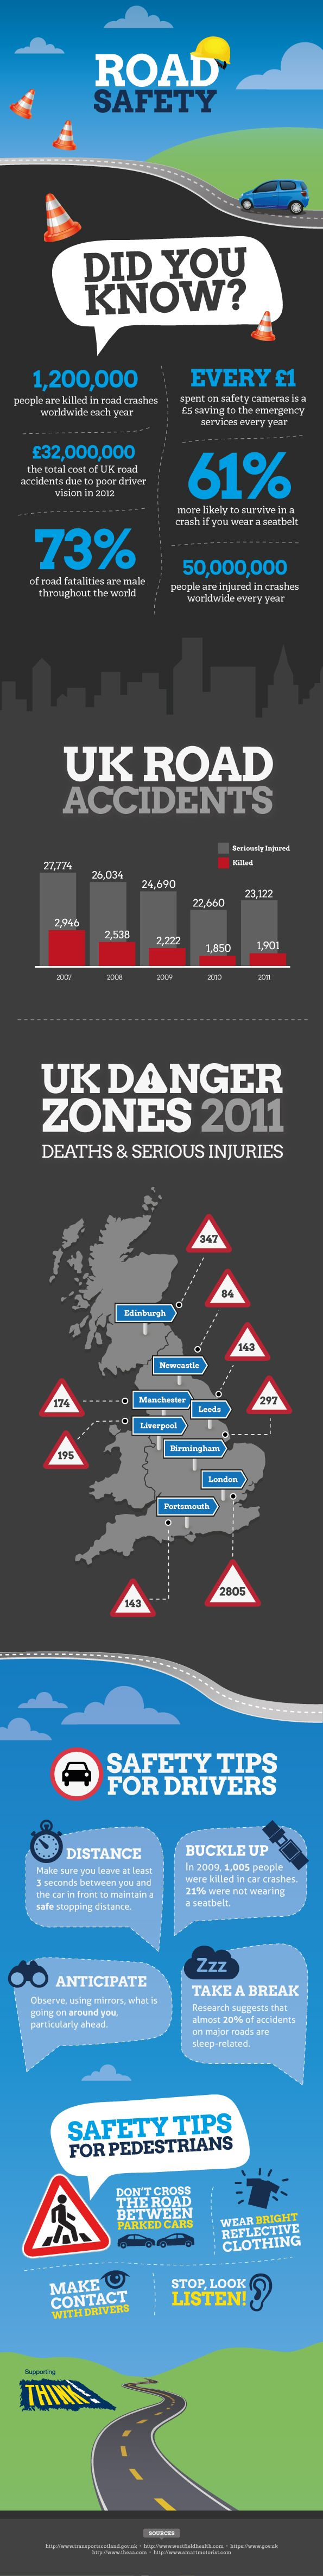 Car colour affects road safety - Uk Road Safety Infographic 1